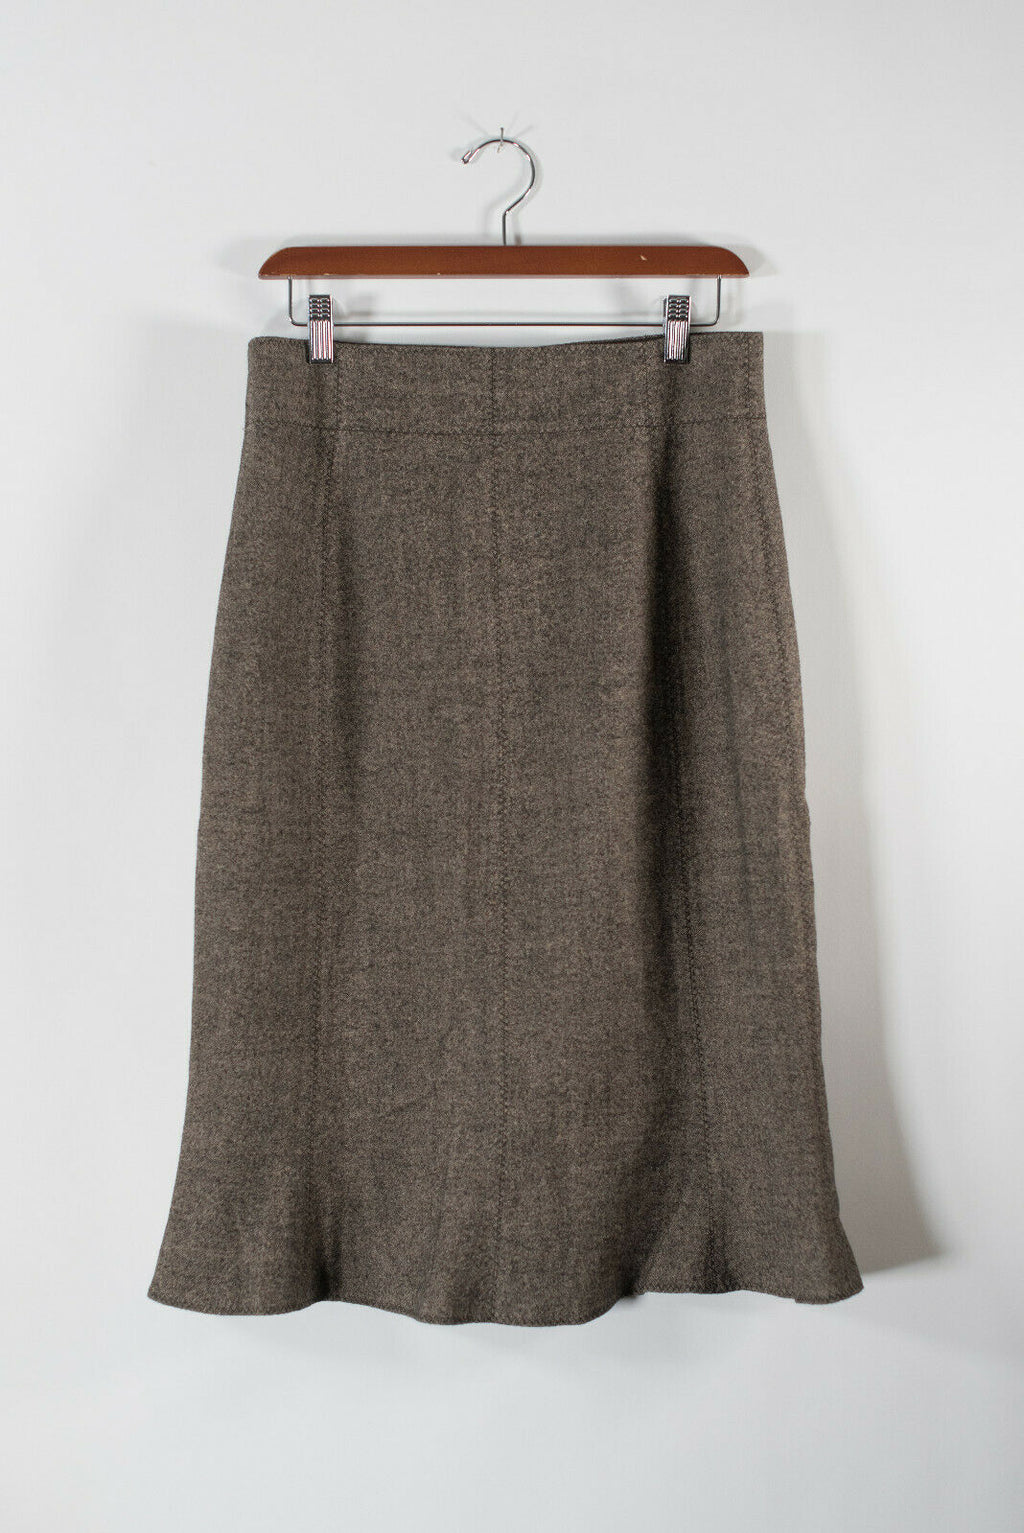 Boss Hugo Boss Womens 10 Medium Brown Skirt Midi Wool Blend Knit A Line Flare